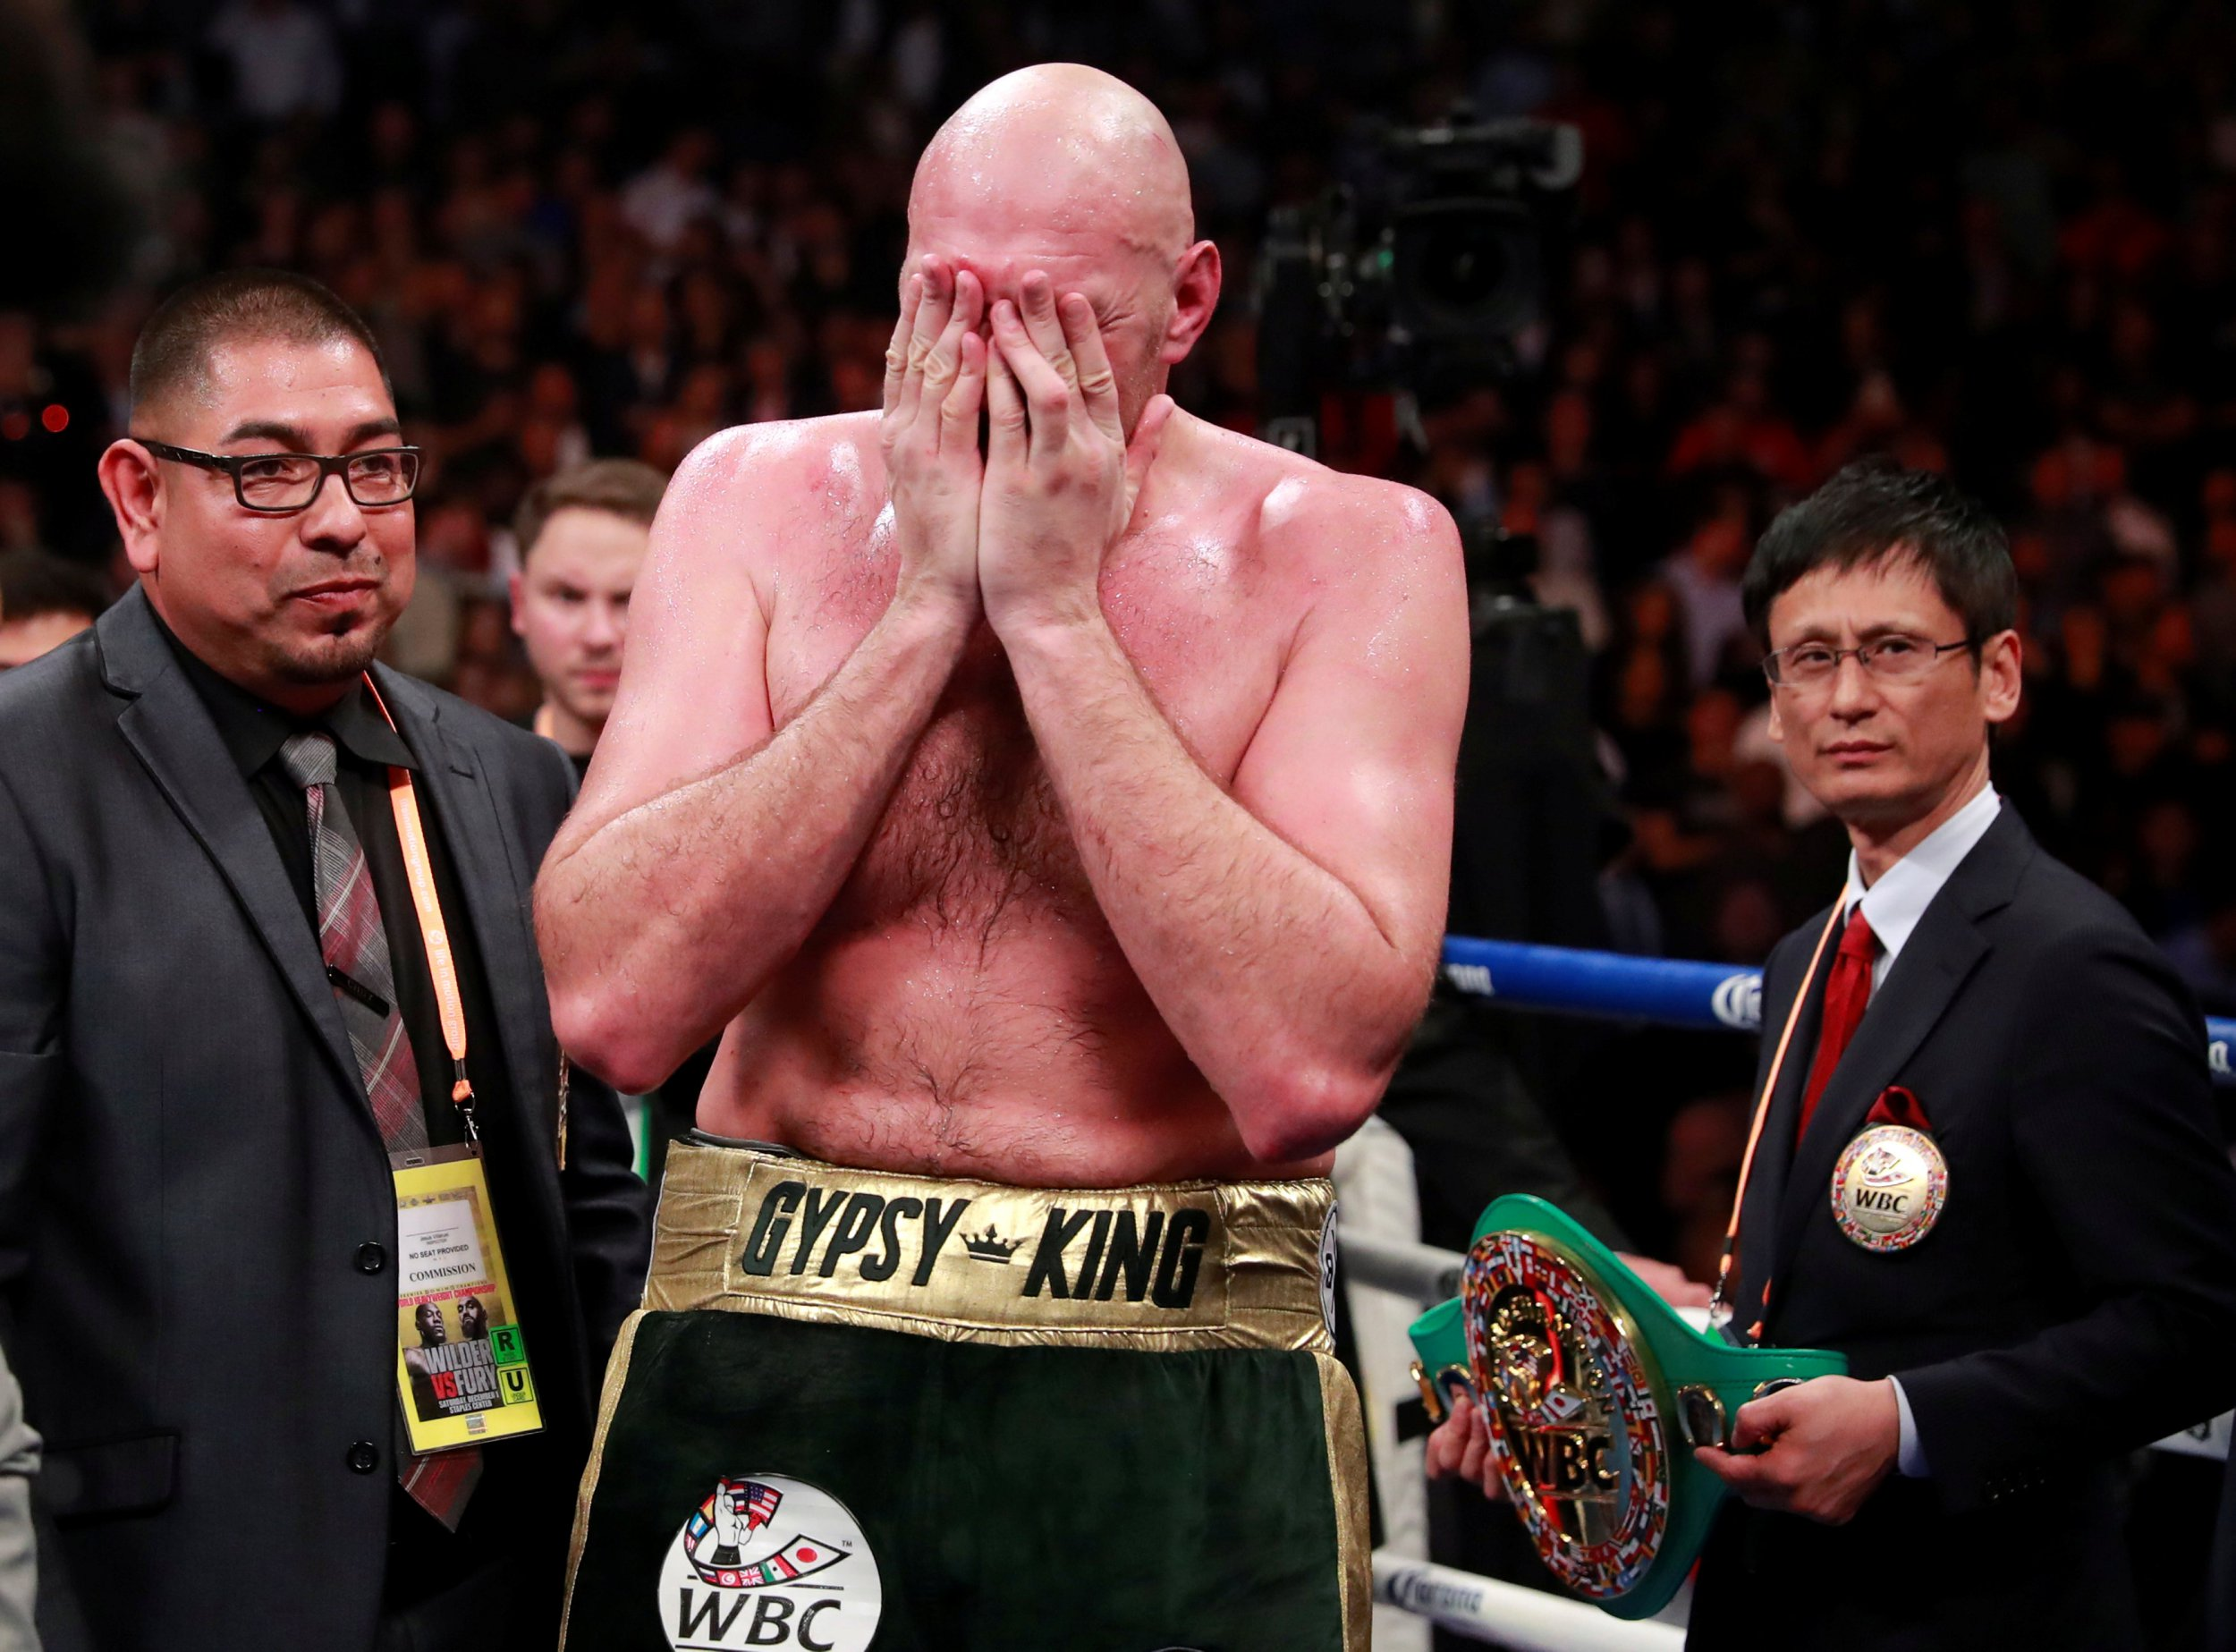 Boxing - Deontay Wilder v Tyson Fury - WBC World Heavyweight Title - Staples Centre, Los Angeles, United States - December 1, 2018 Tyson Fury reacts after the fight Action Images via Reuters/Andrew Couldridge